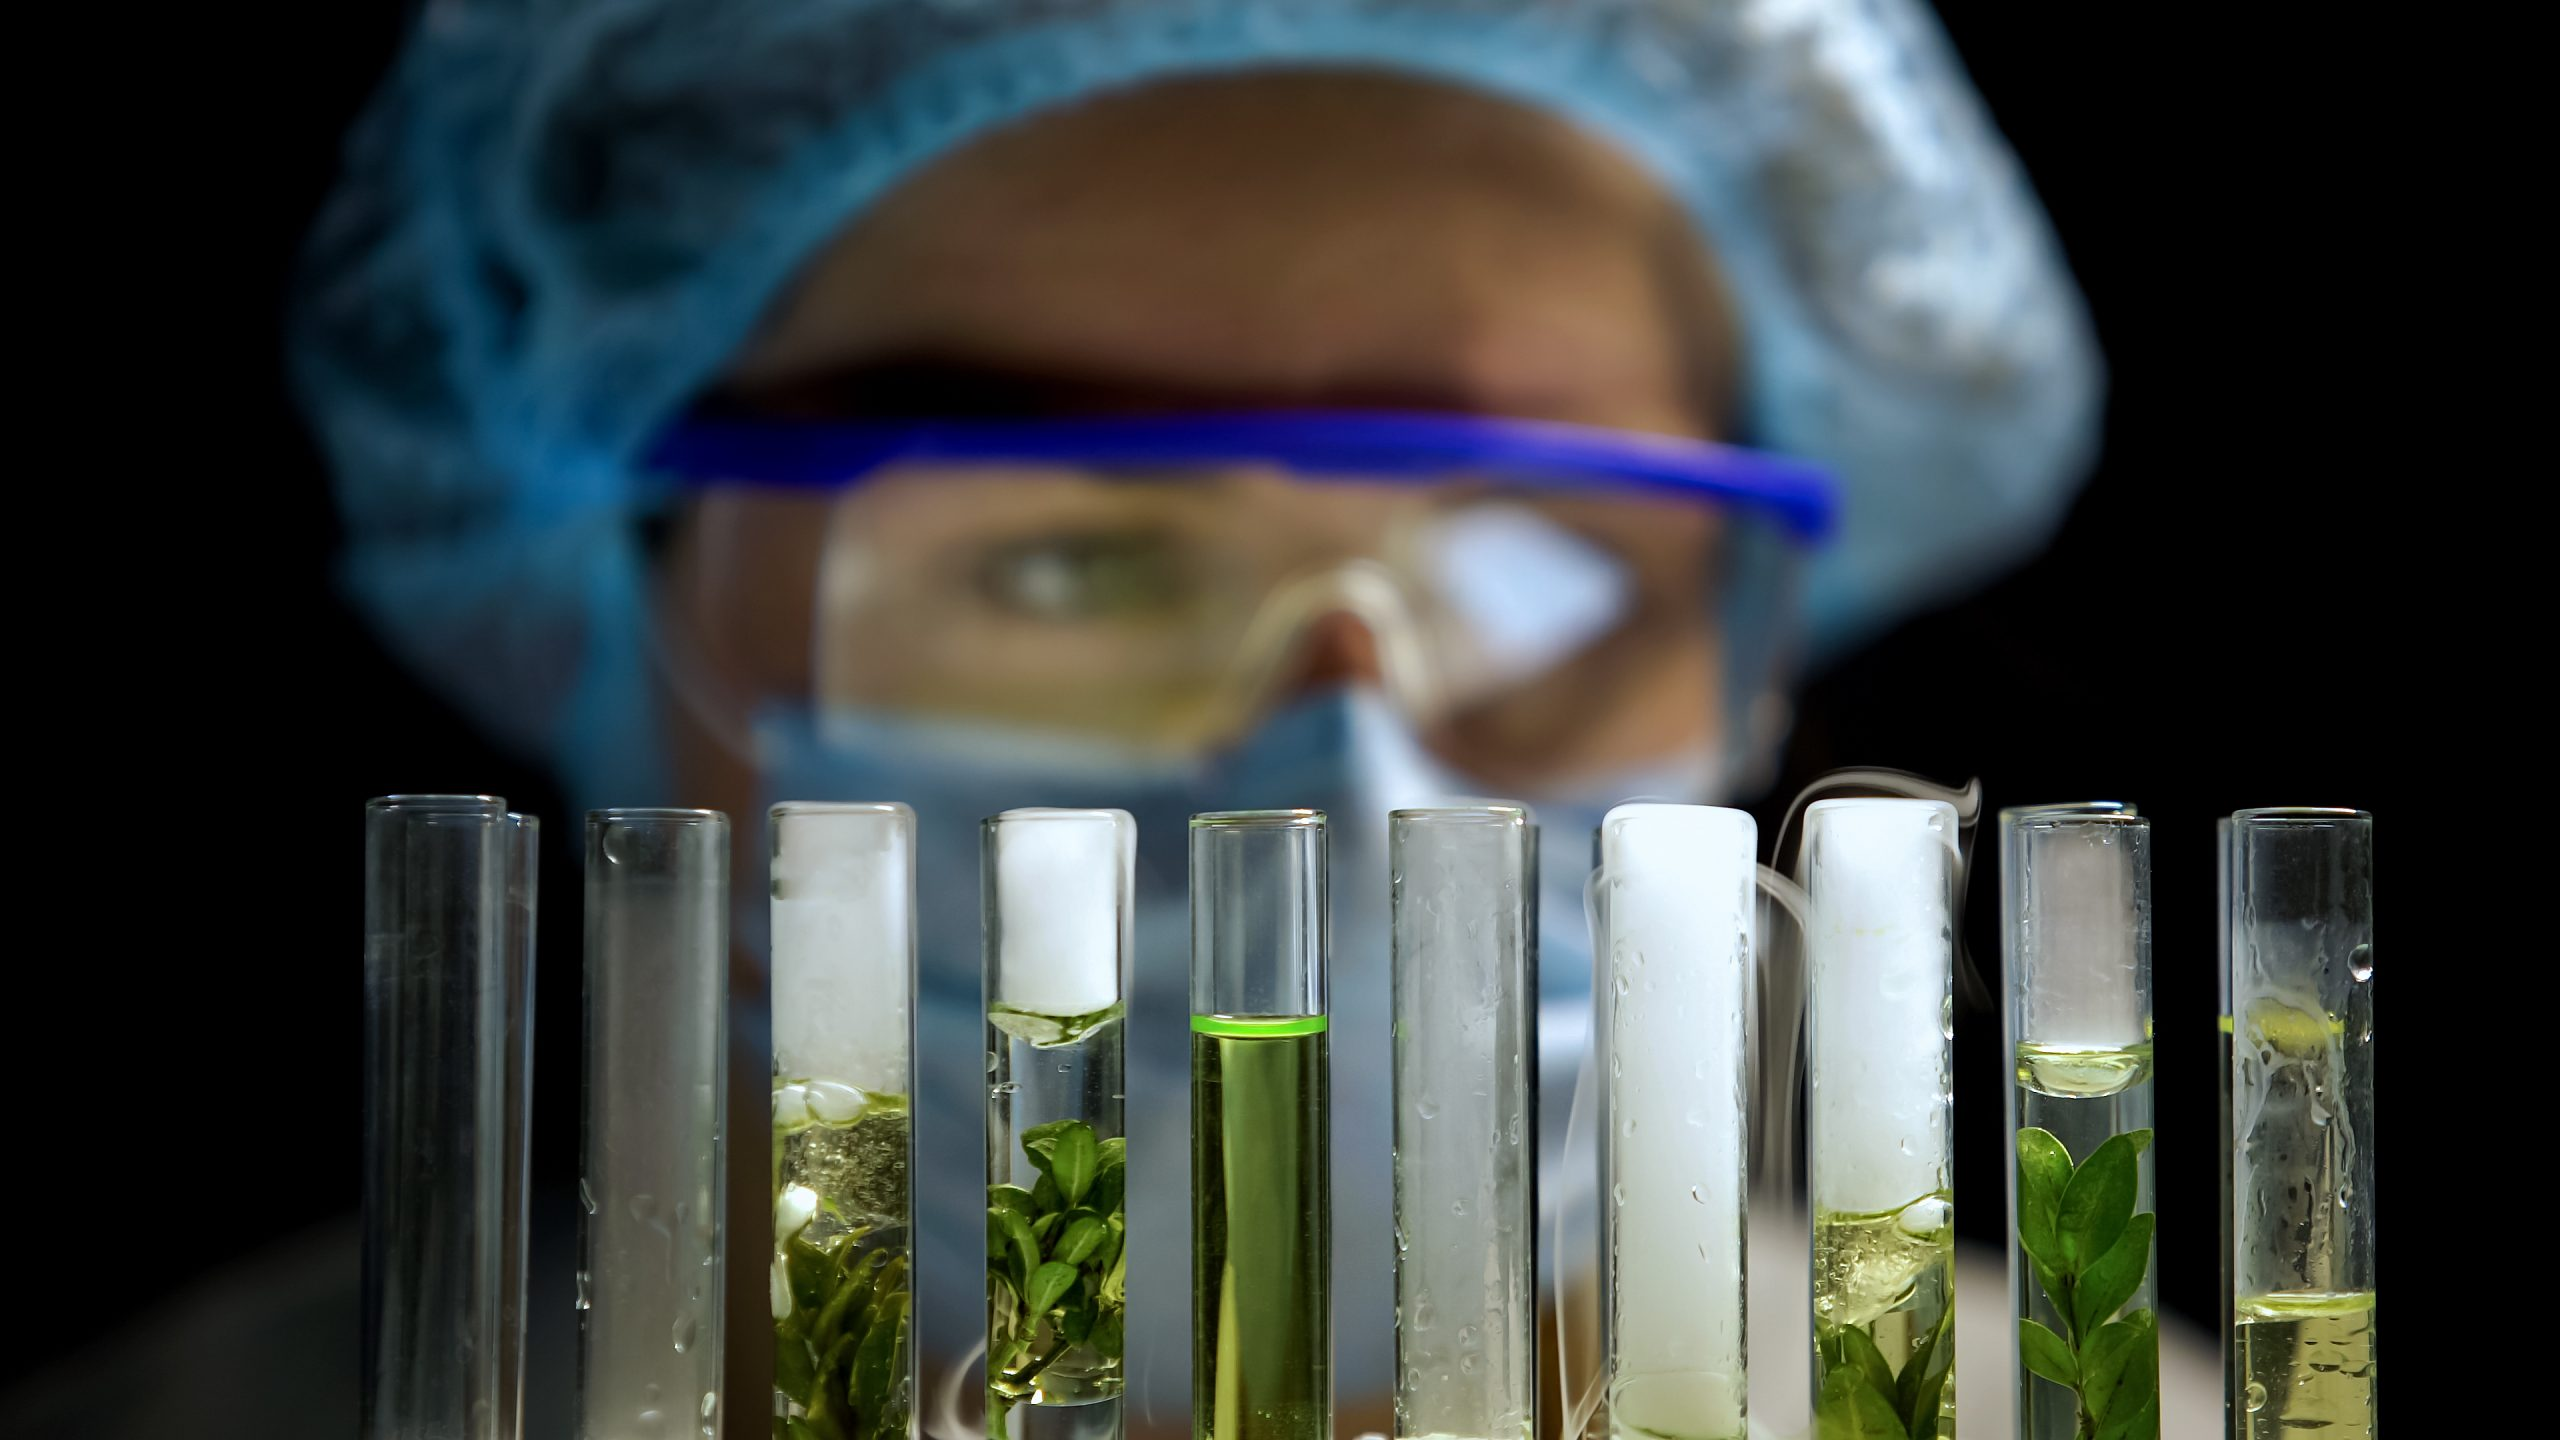 Chemist checking reaction in tubes with plants, alternative fuel development